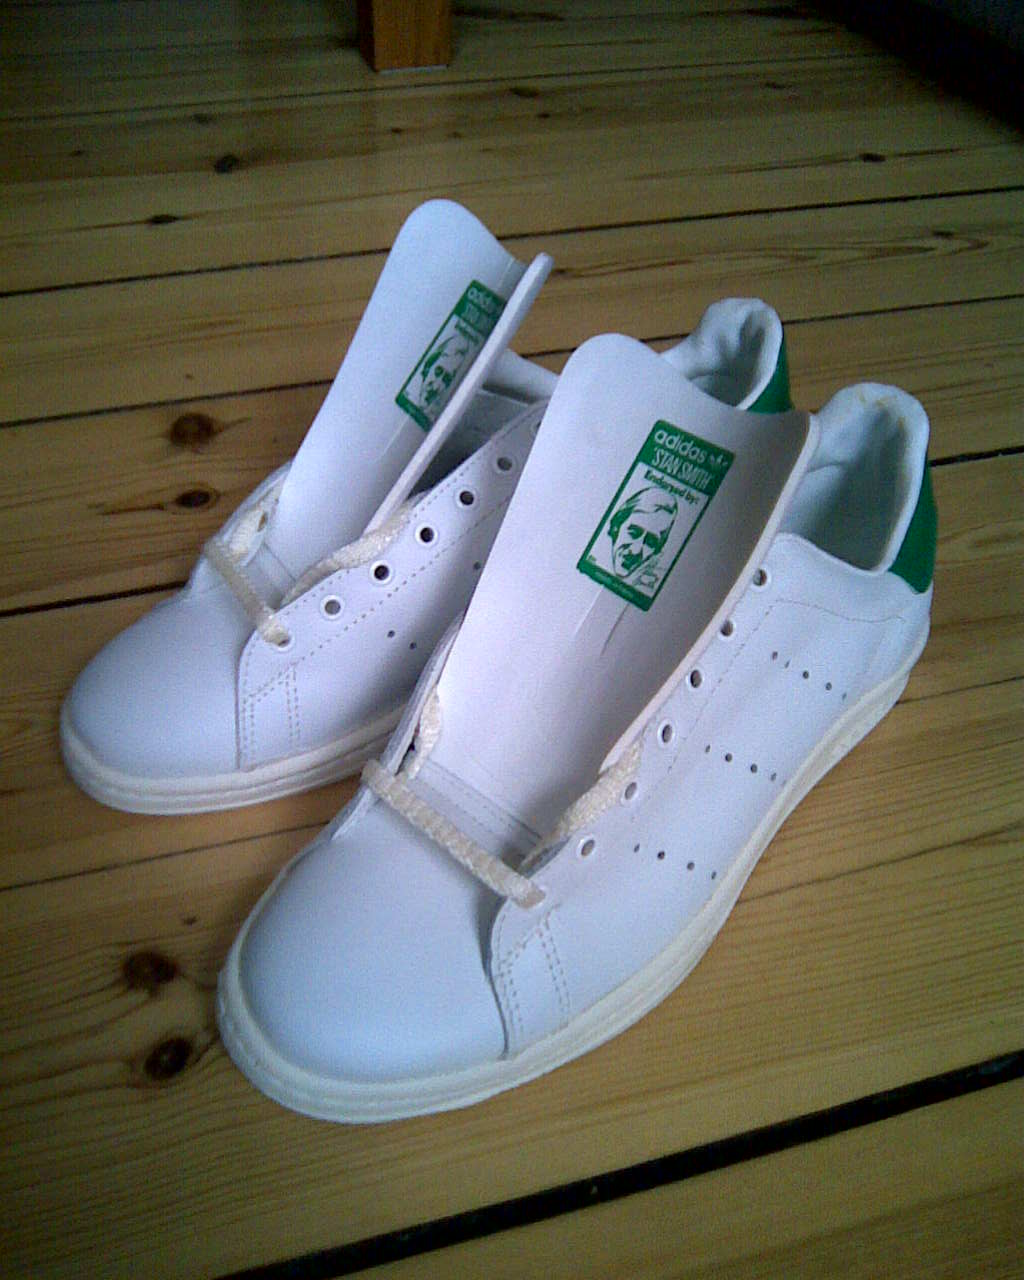 1f08368db17 Adidas Stan Smith - Wikipedia